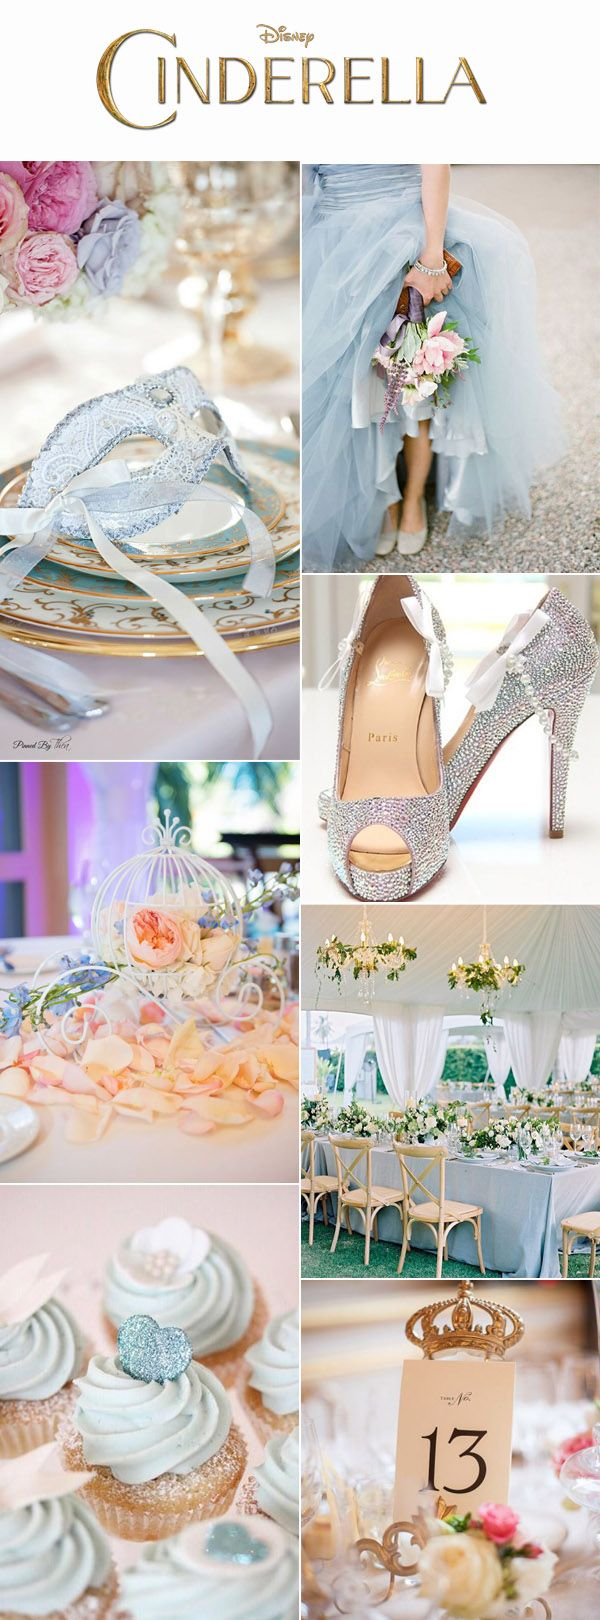 Fairytale wedding theme ideas to make your wedding magical fairytale wedding theme ideas to make your wedding magical romantic and unique junglespirit Image collections